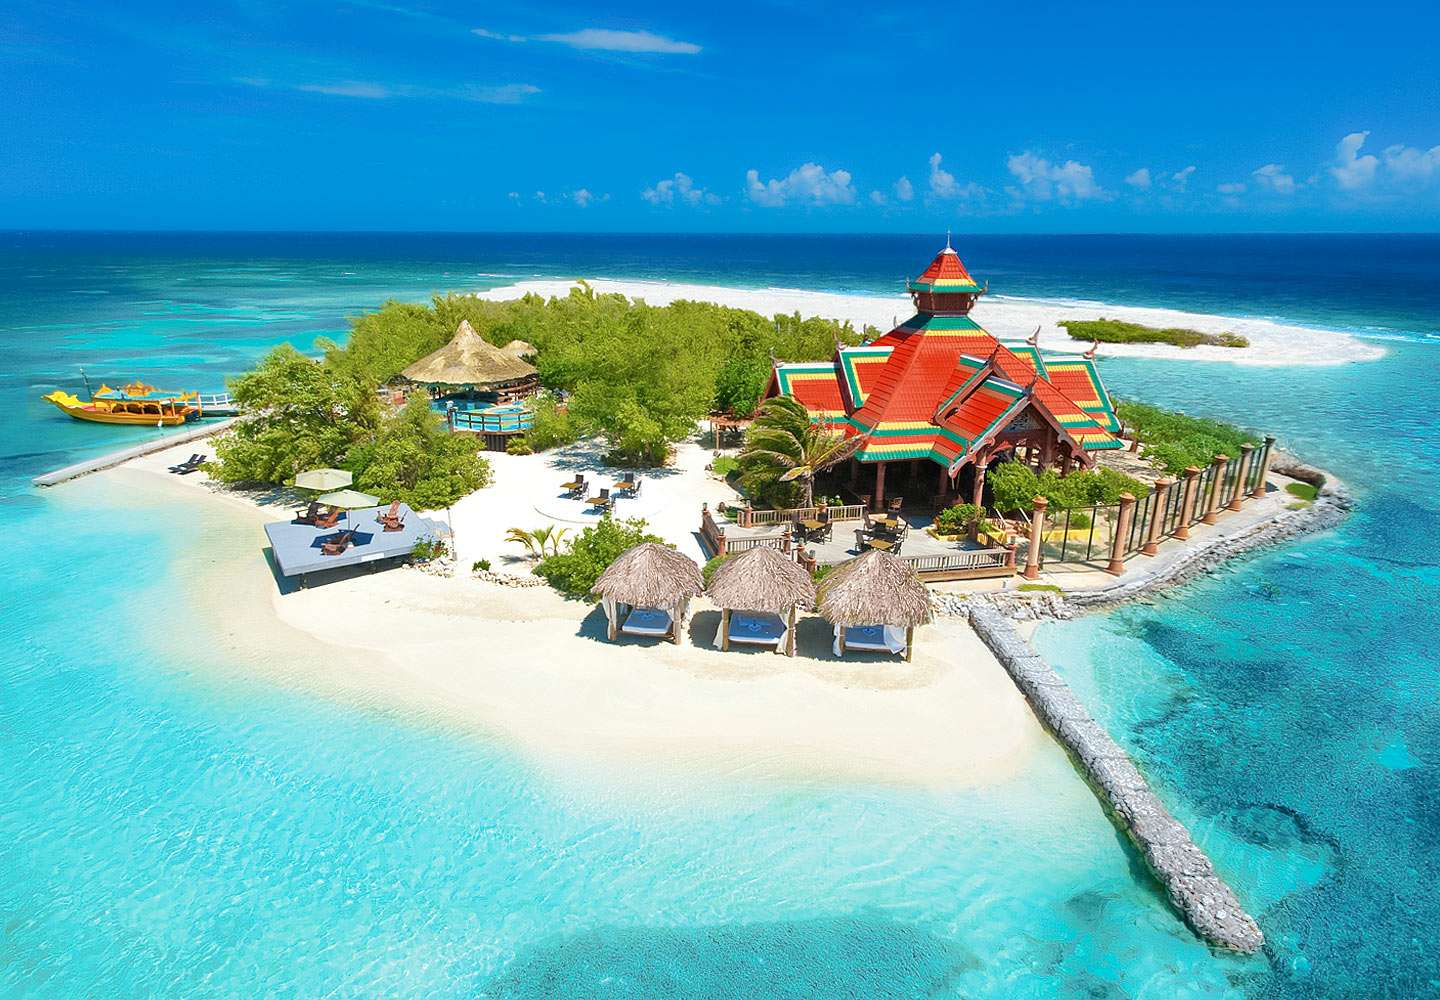 Sandals Royal Caribbean Resort & Private Island, Saint James, Jamaica